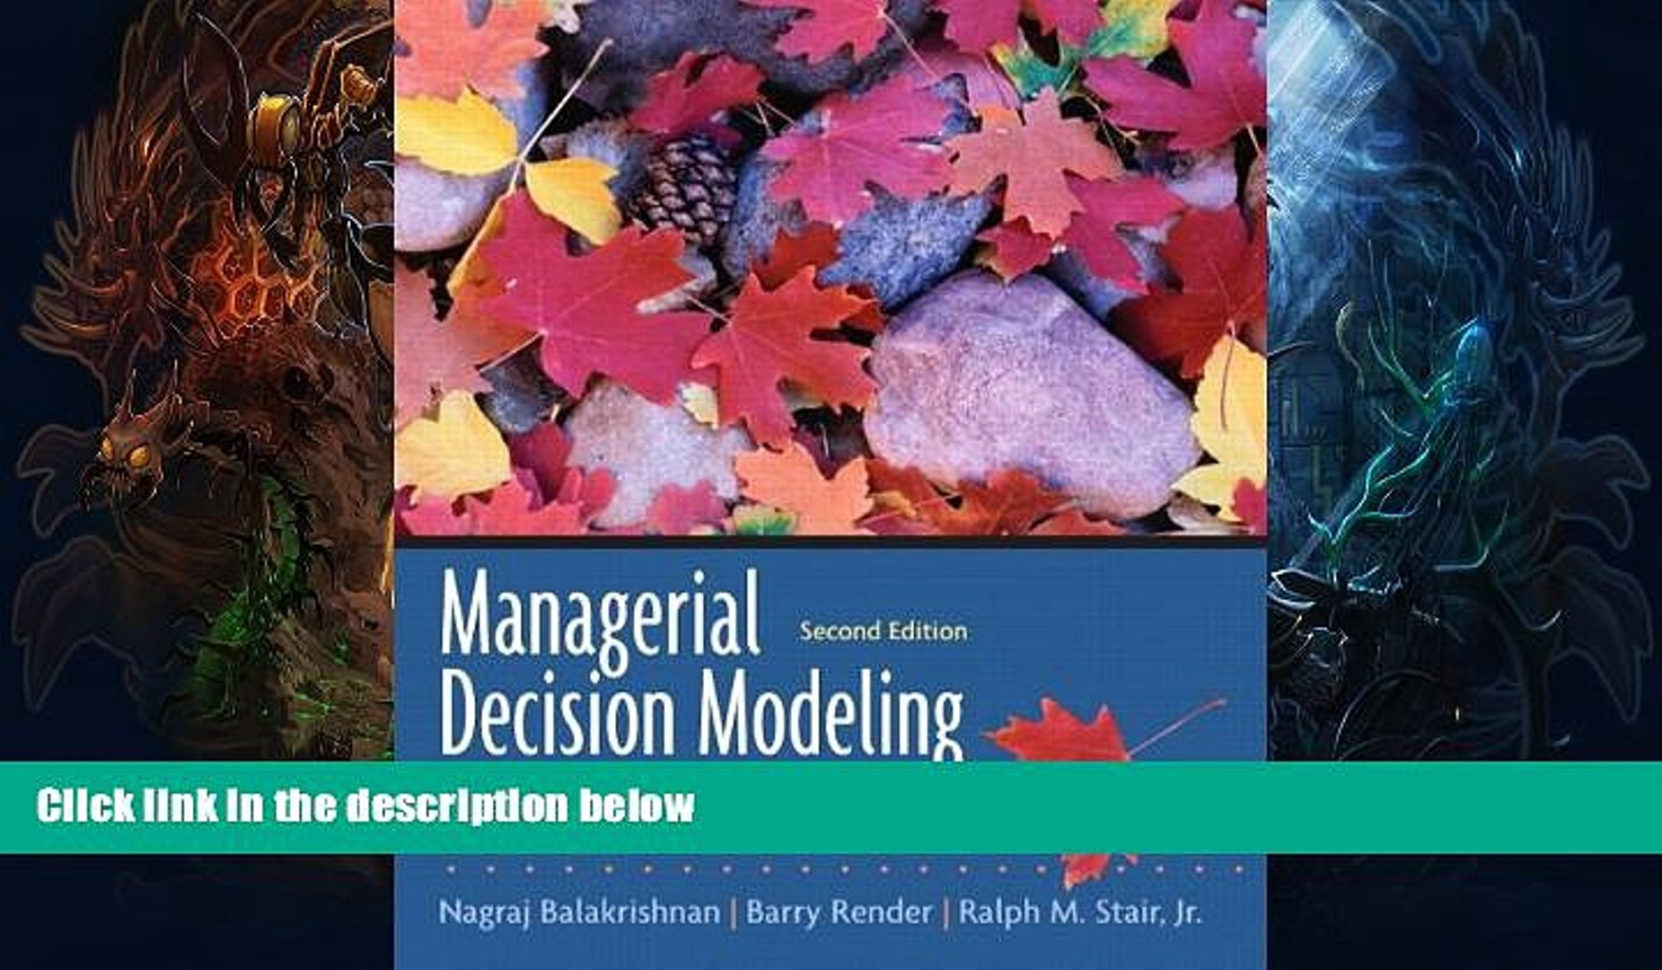 Managerial Decision Modeling With Spreadsheets 2Nd Edition Within Read Online Managerial Decision Modeling With Spreadsheets 2Nd